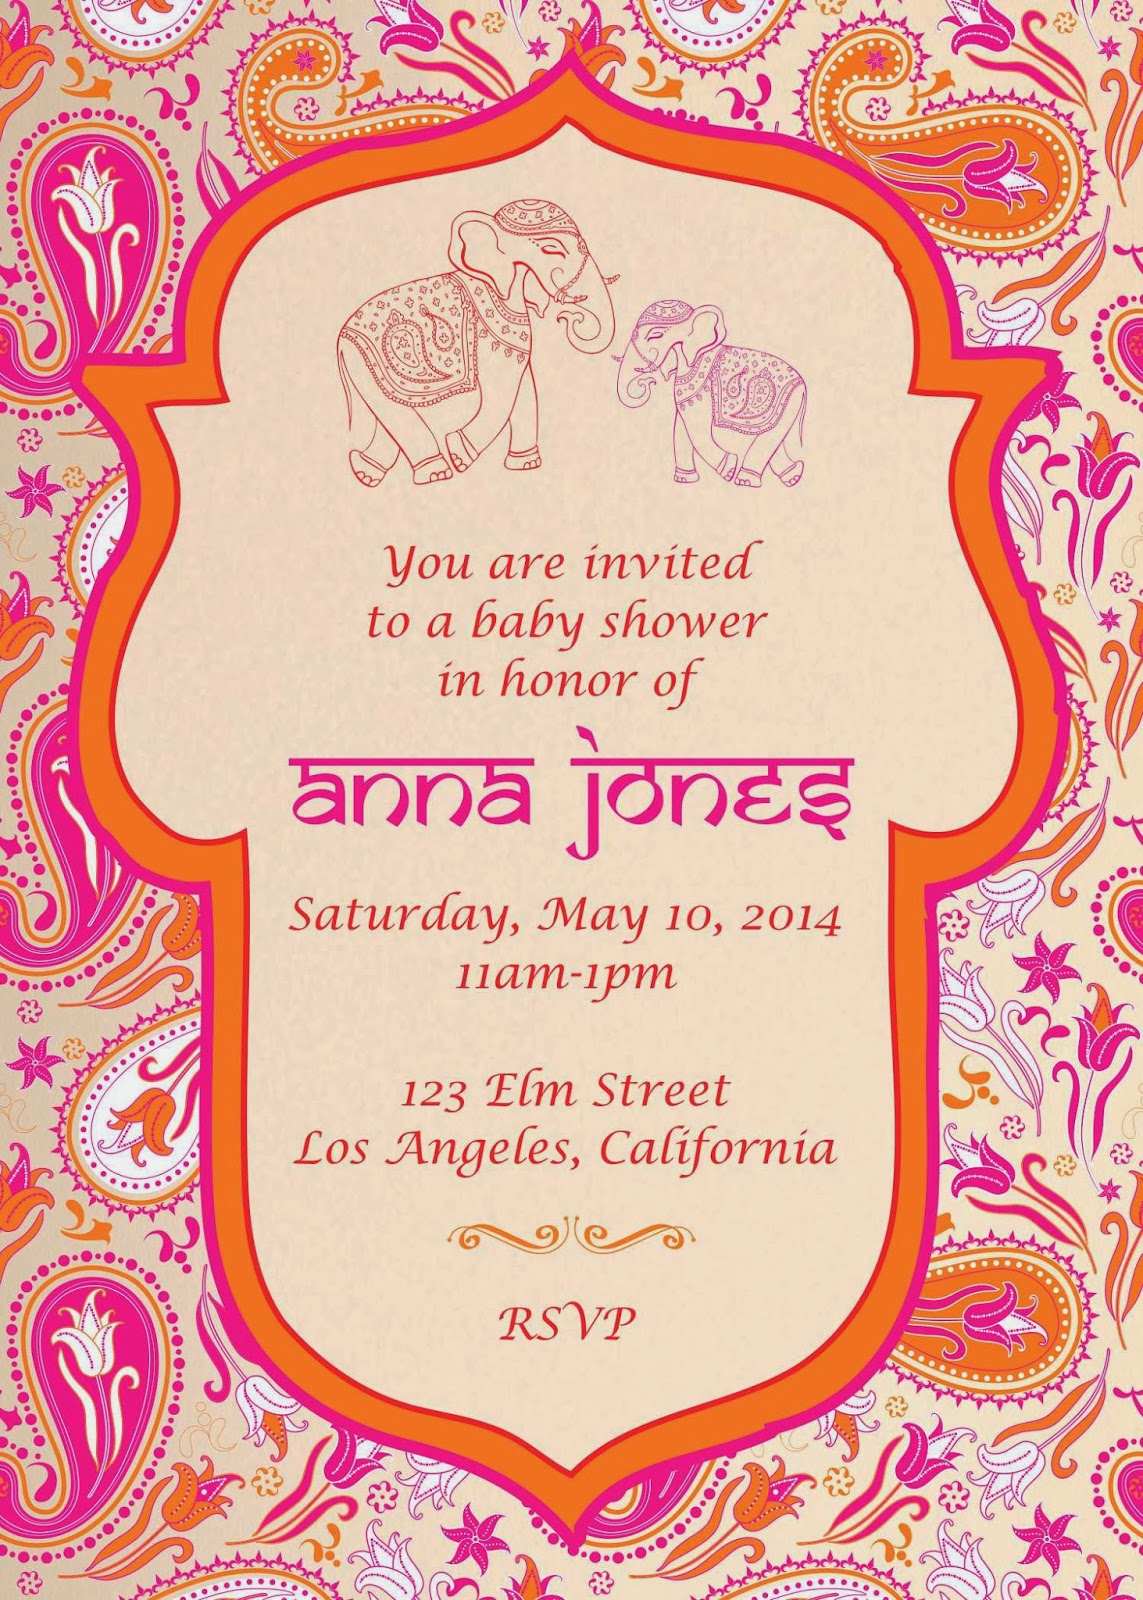 Indian Baby Shower Invitations Part - 42: Monday, March 3, 2014. Our Latest Design Indian Style Baby Shower Invitation  ...